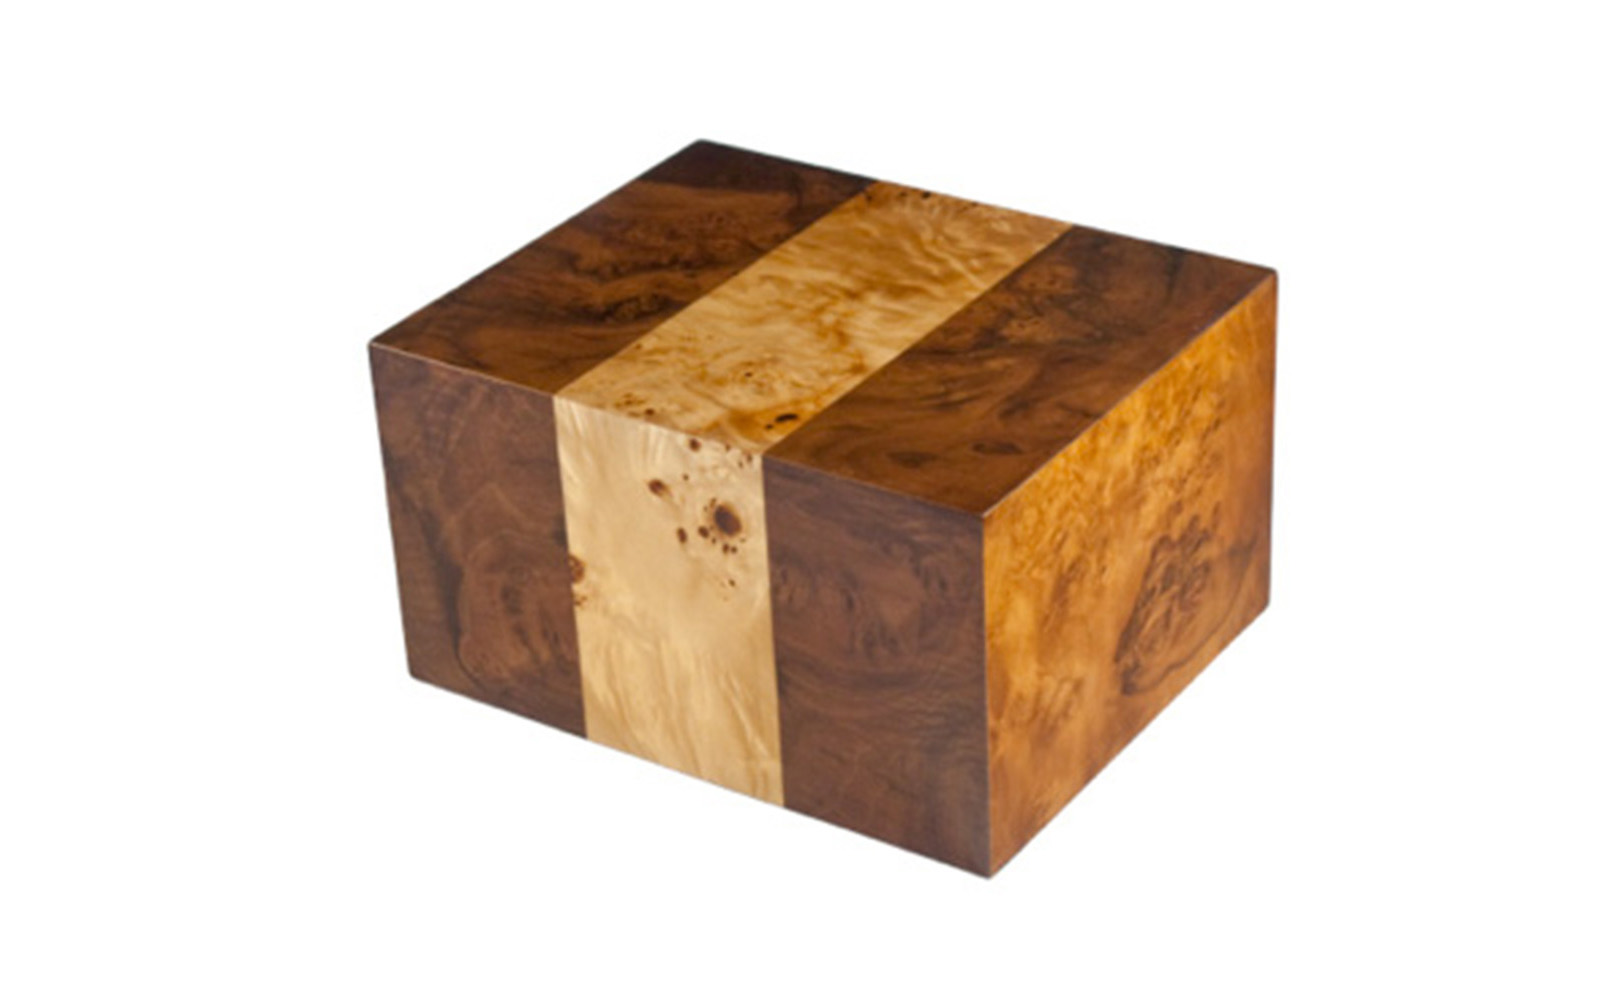 """Labarde     The natural beauty of the Southwestern French woodlands is apparent in this urn. The maple burl with walnut side inlays creates a multi textured look that will remind you of the inherent beauty of Mother Nature. This urn is available in small and large sizes only.     Small:  29 Cu. inches / up to 24 lbs. / 3.7"""" x 3.7"""" x 4.5""""  $115    Large:  235 Cu. inches / up to 230 lbs. / 9.1"""" x 7.4"""" x 5.2""""  $225"""